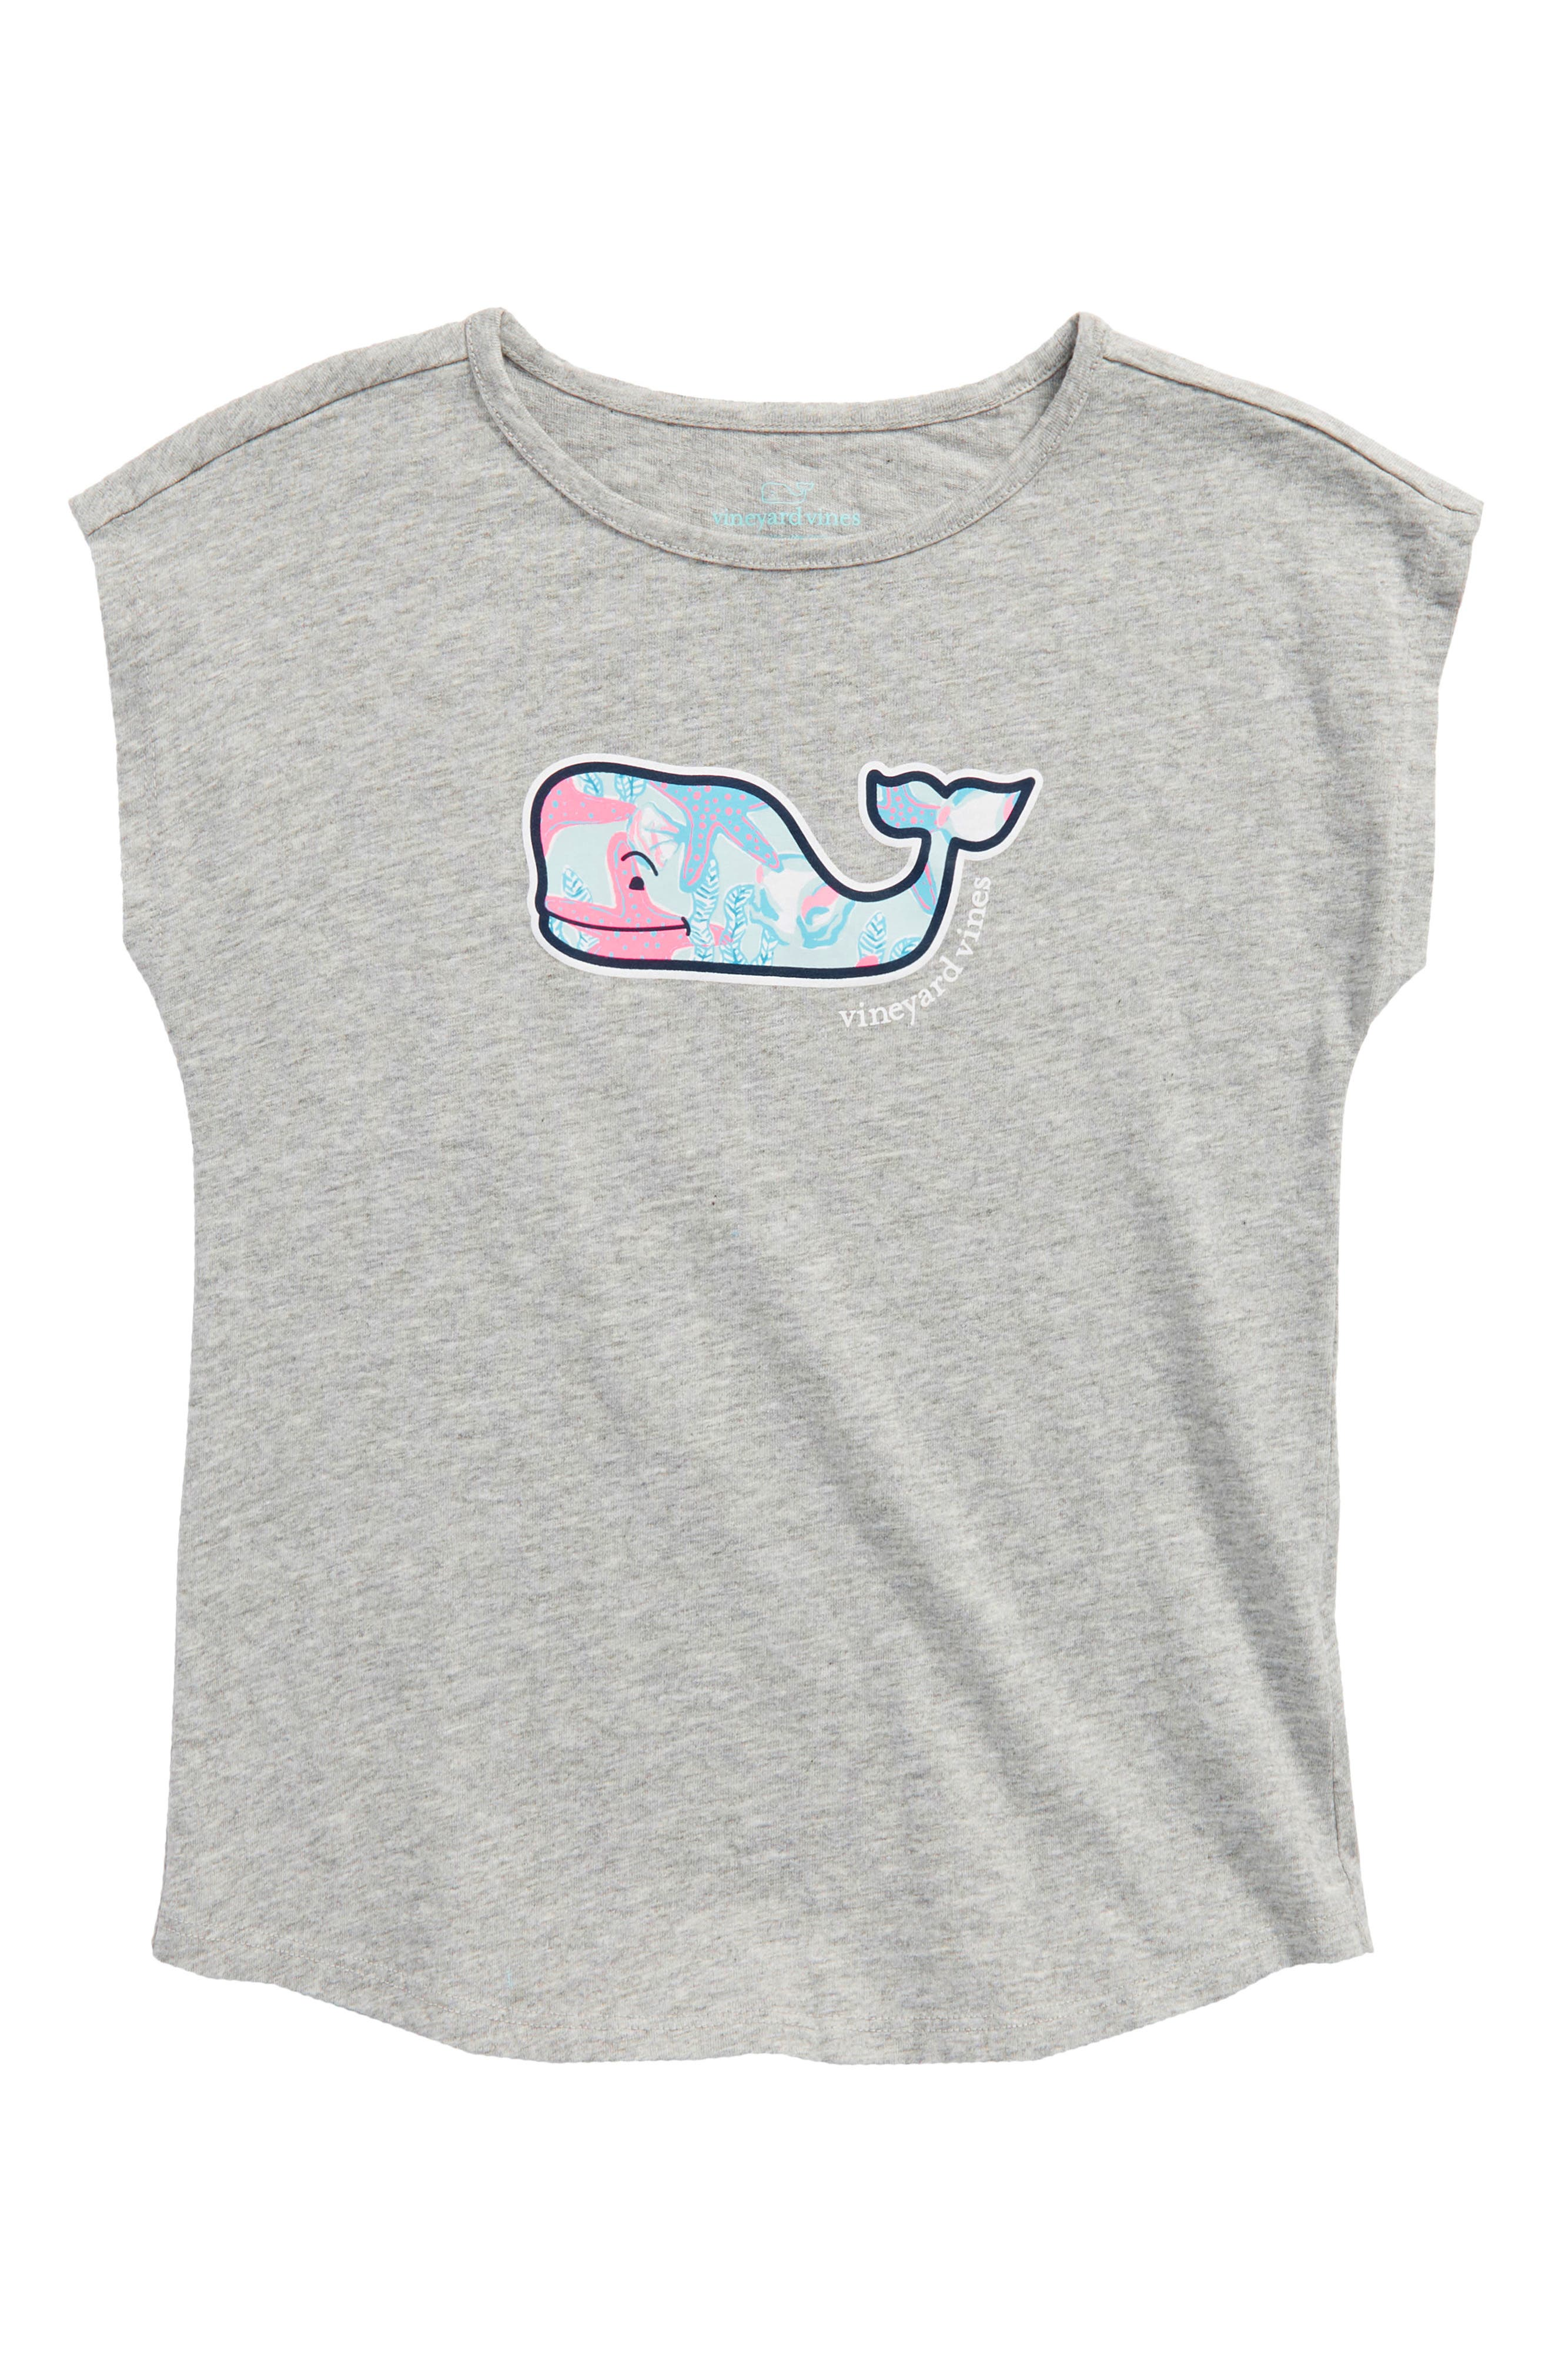 Starfish Whale Graphic Tee,                         Main,                         color, Gray Heather